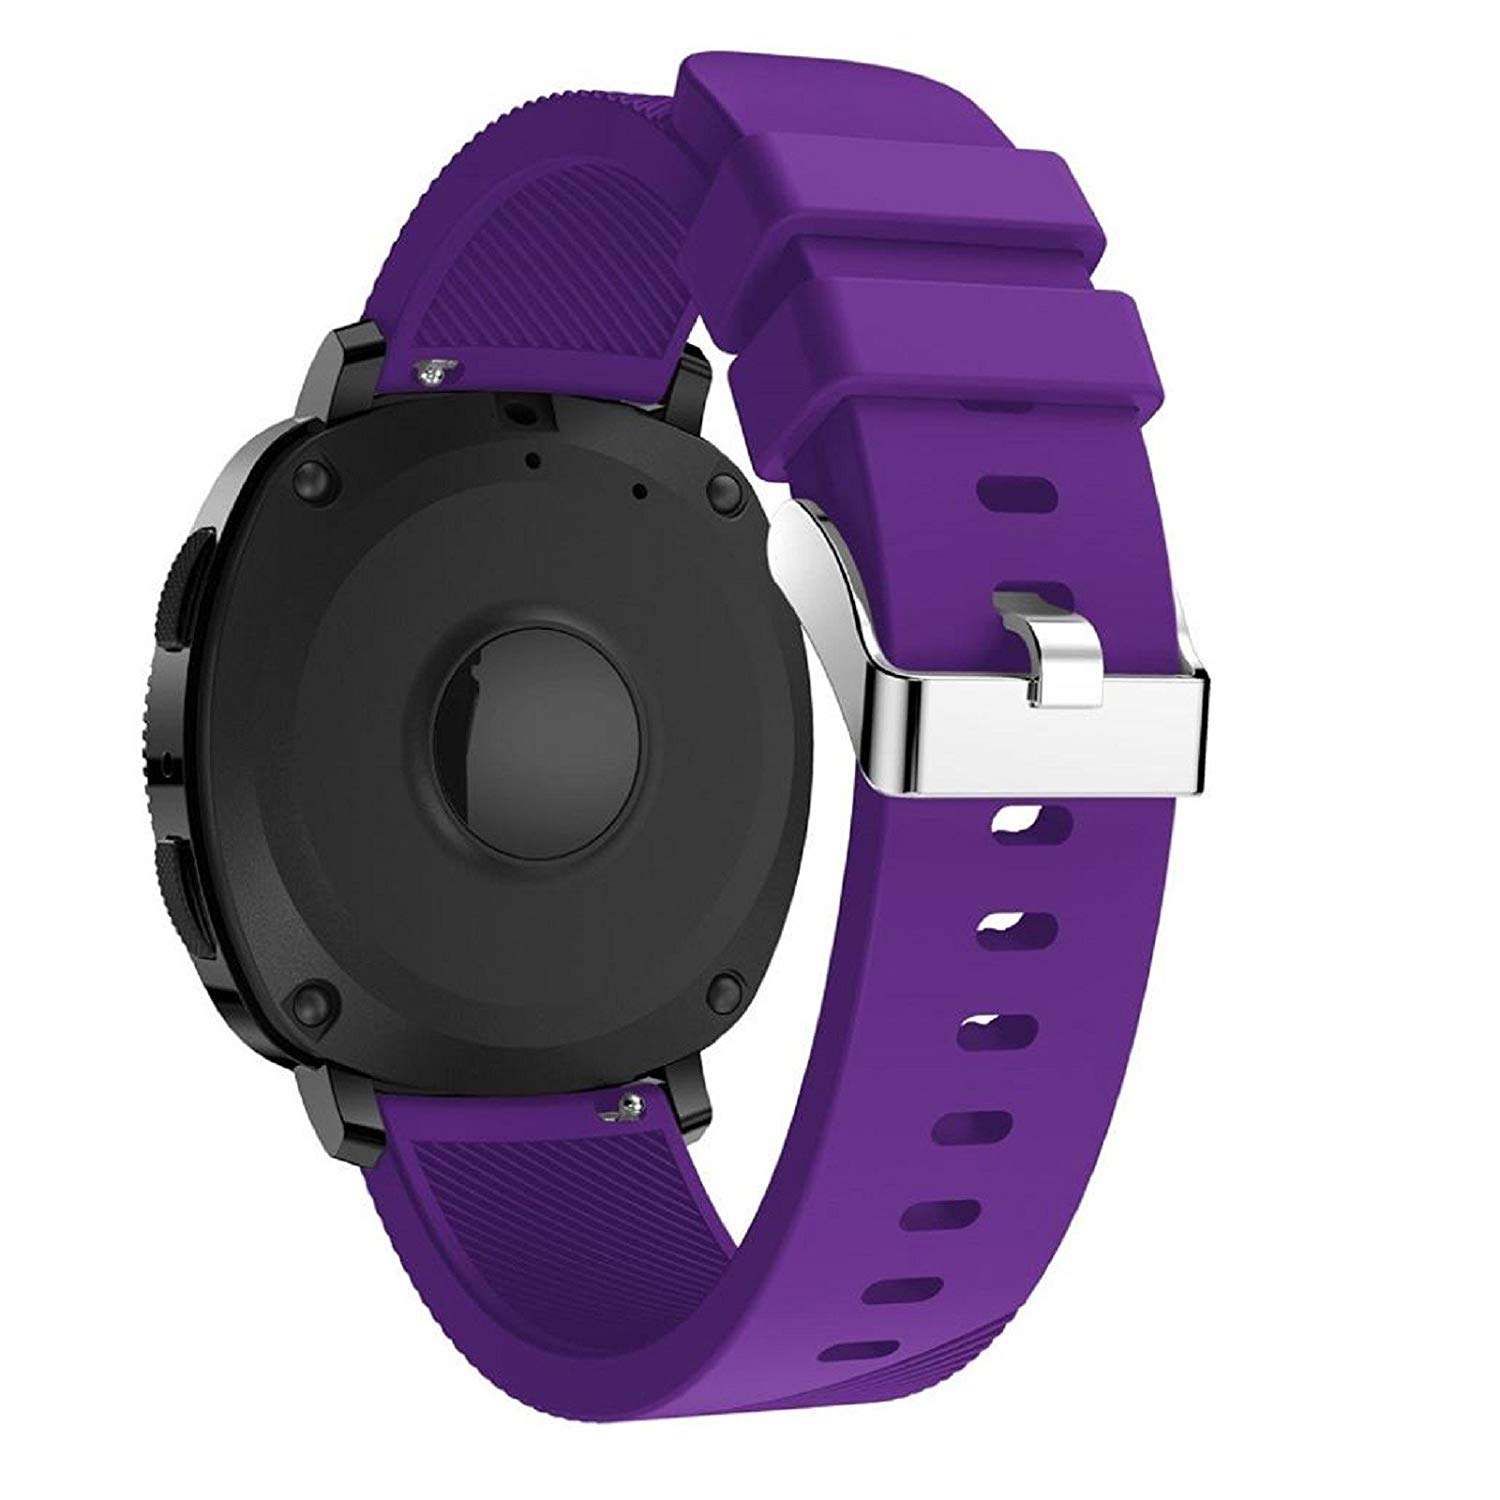 Owill Sports Soft Silicone Replacement Wristband Wrist Strap For Samsung Gear Sport/ Stainless Steel Pin and Tuck Closure (Purple)